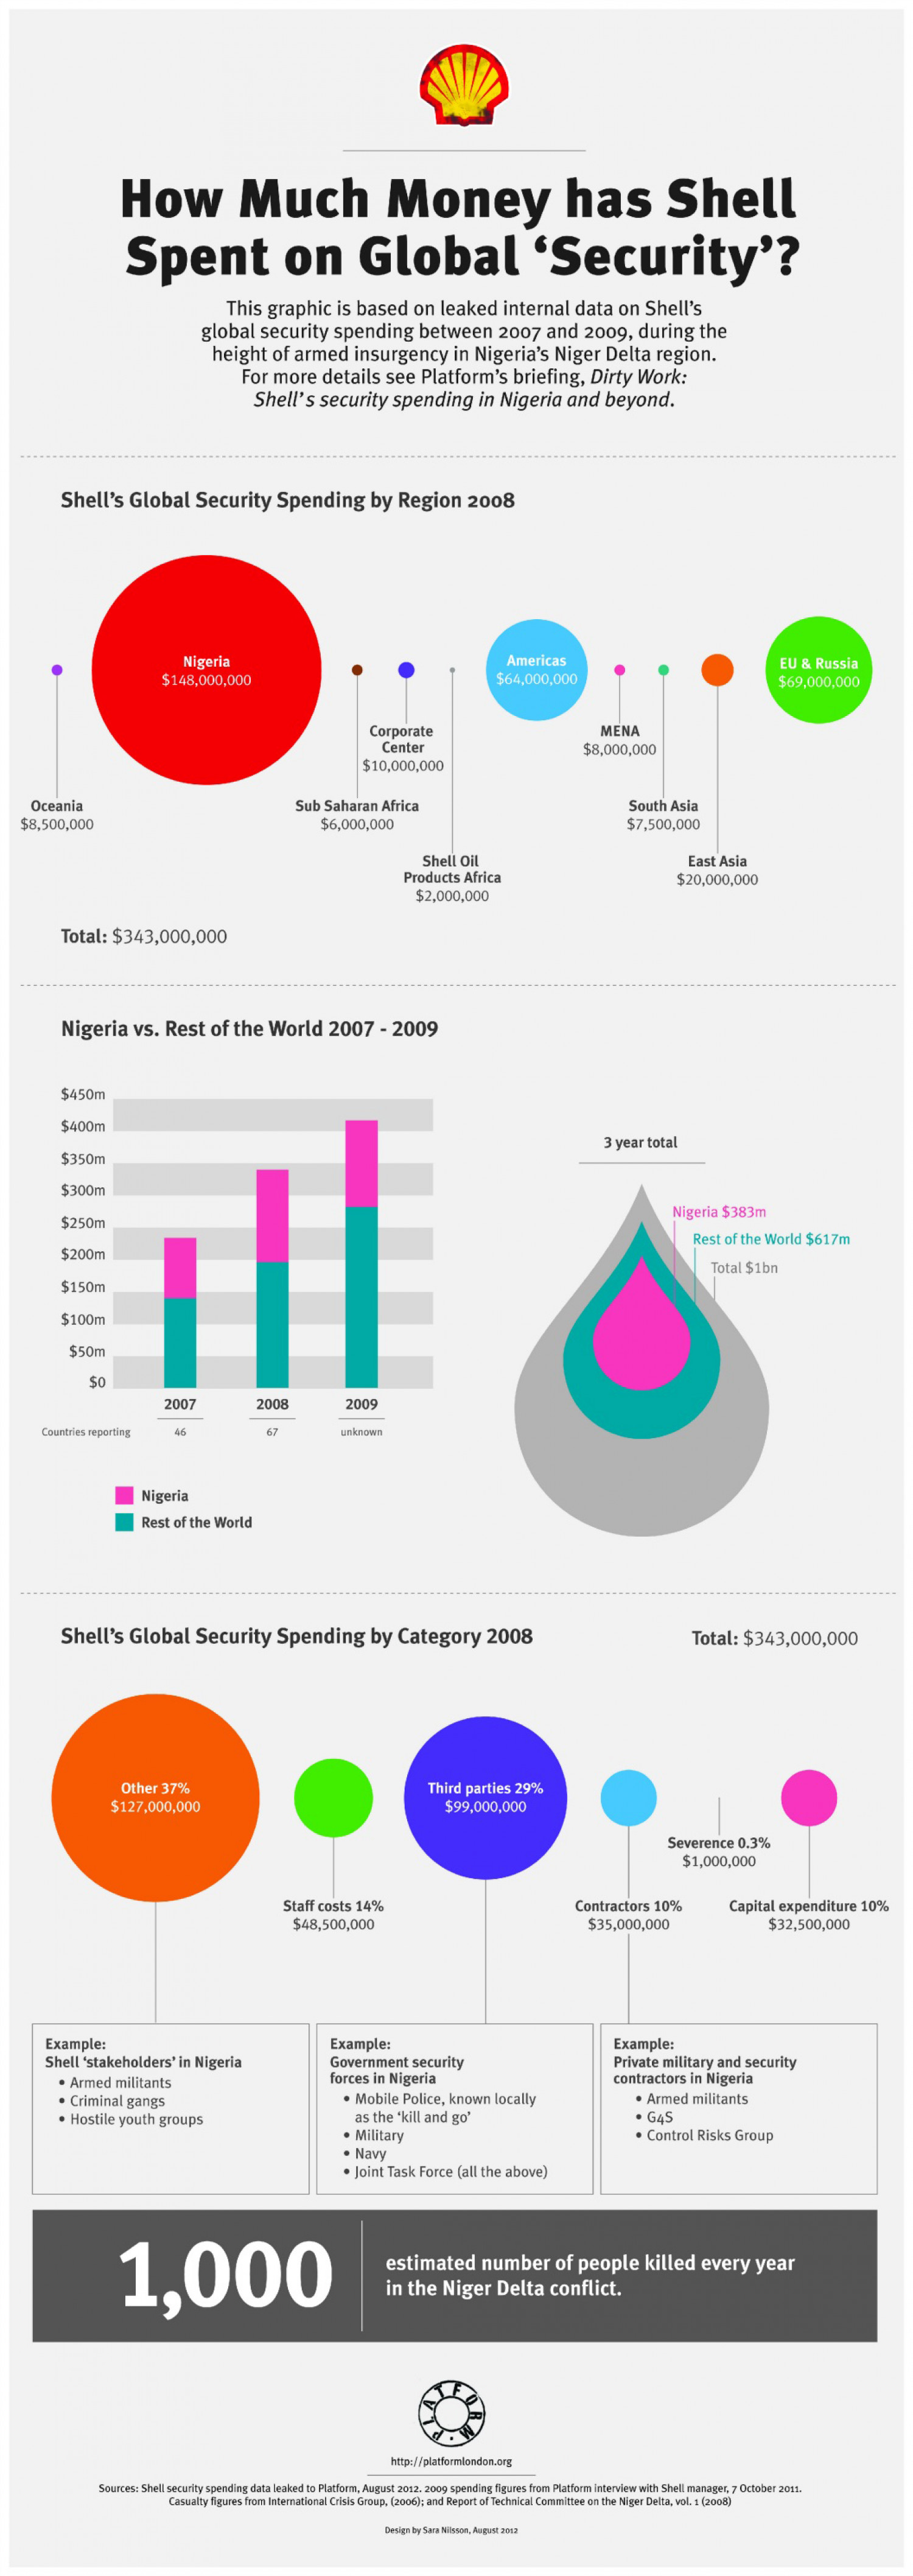 How Much Money has Shell Spent on Global 'Security'? Infographic